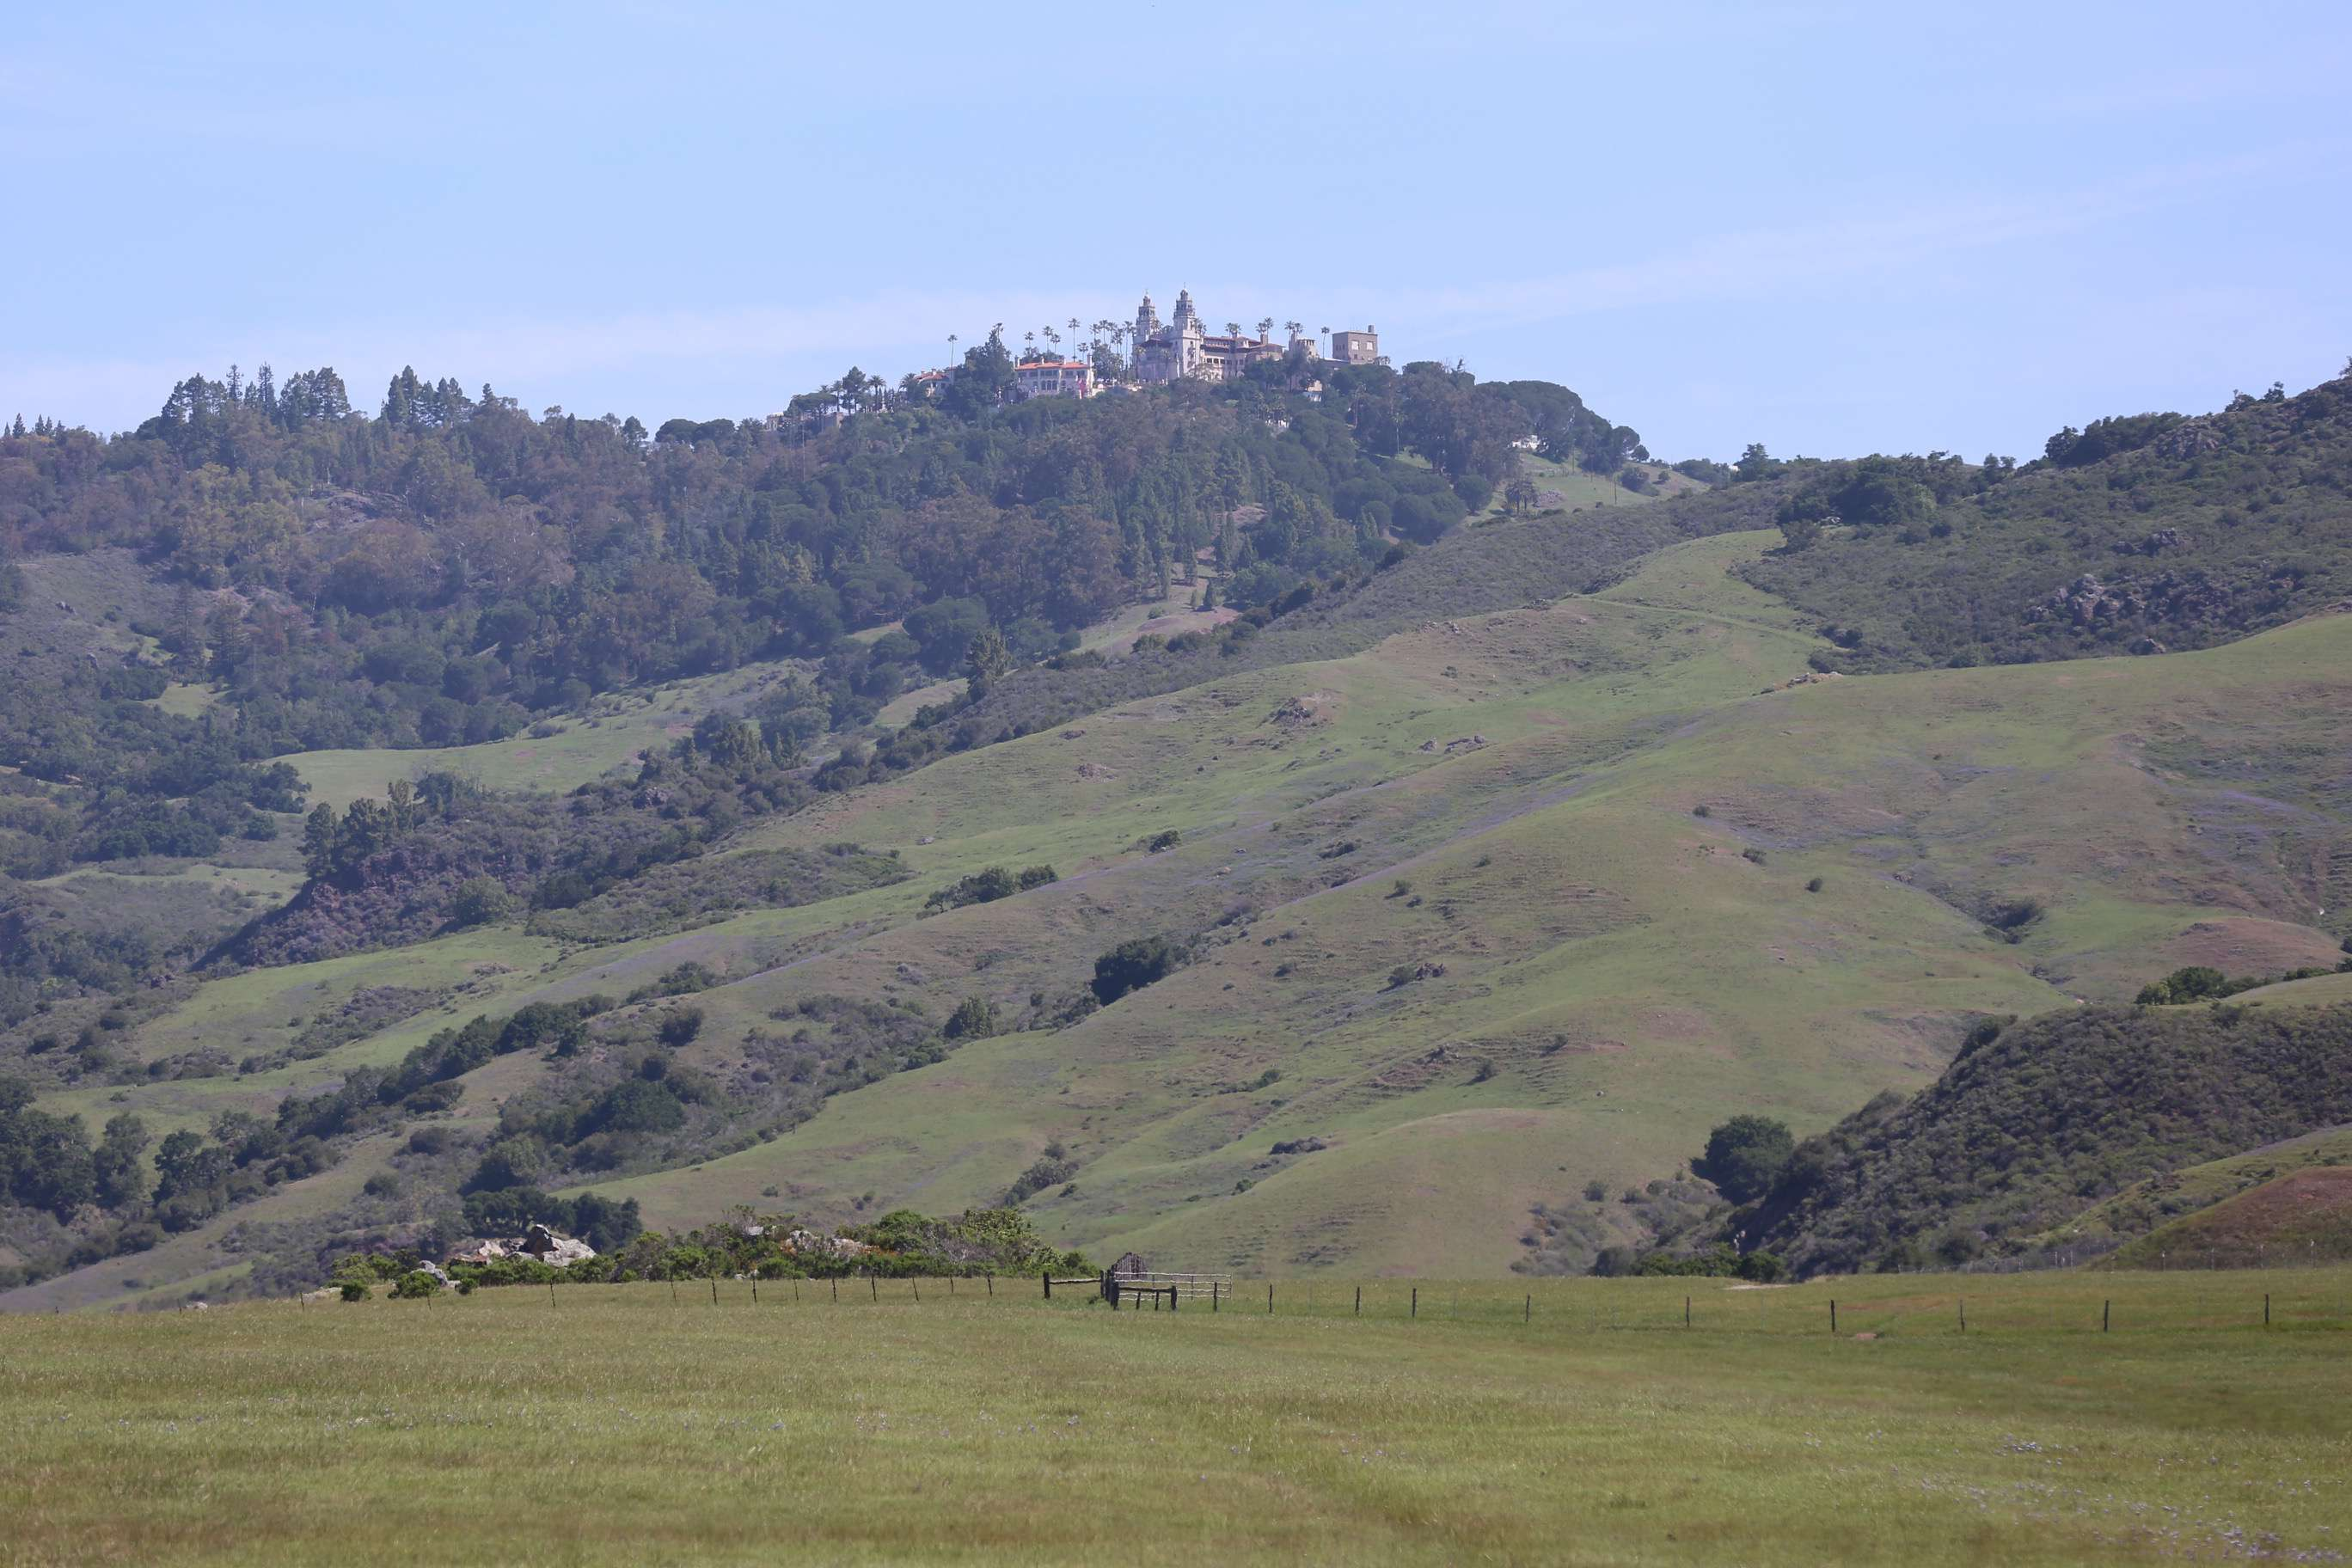 """Au plein air"" captures the hues and textures of the San Luis Obispo hills with the castle on the promontory."